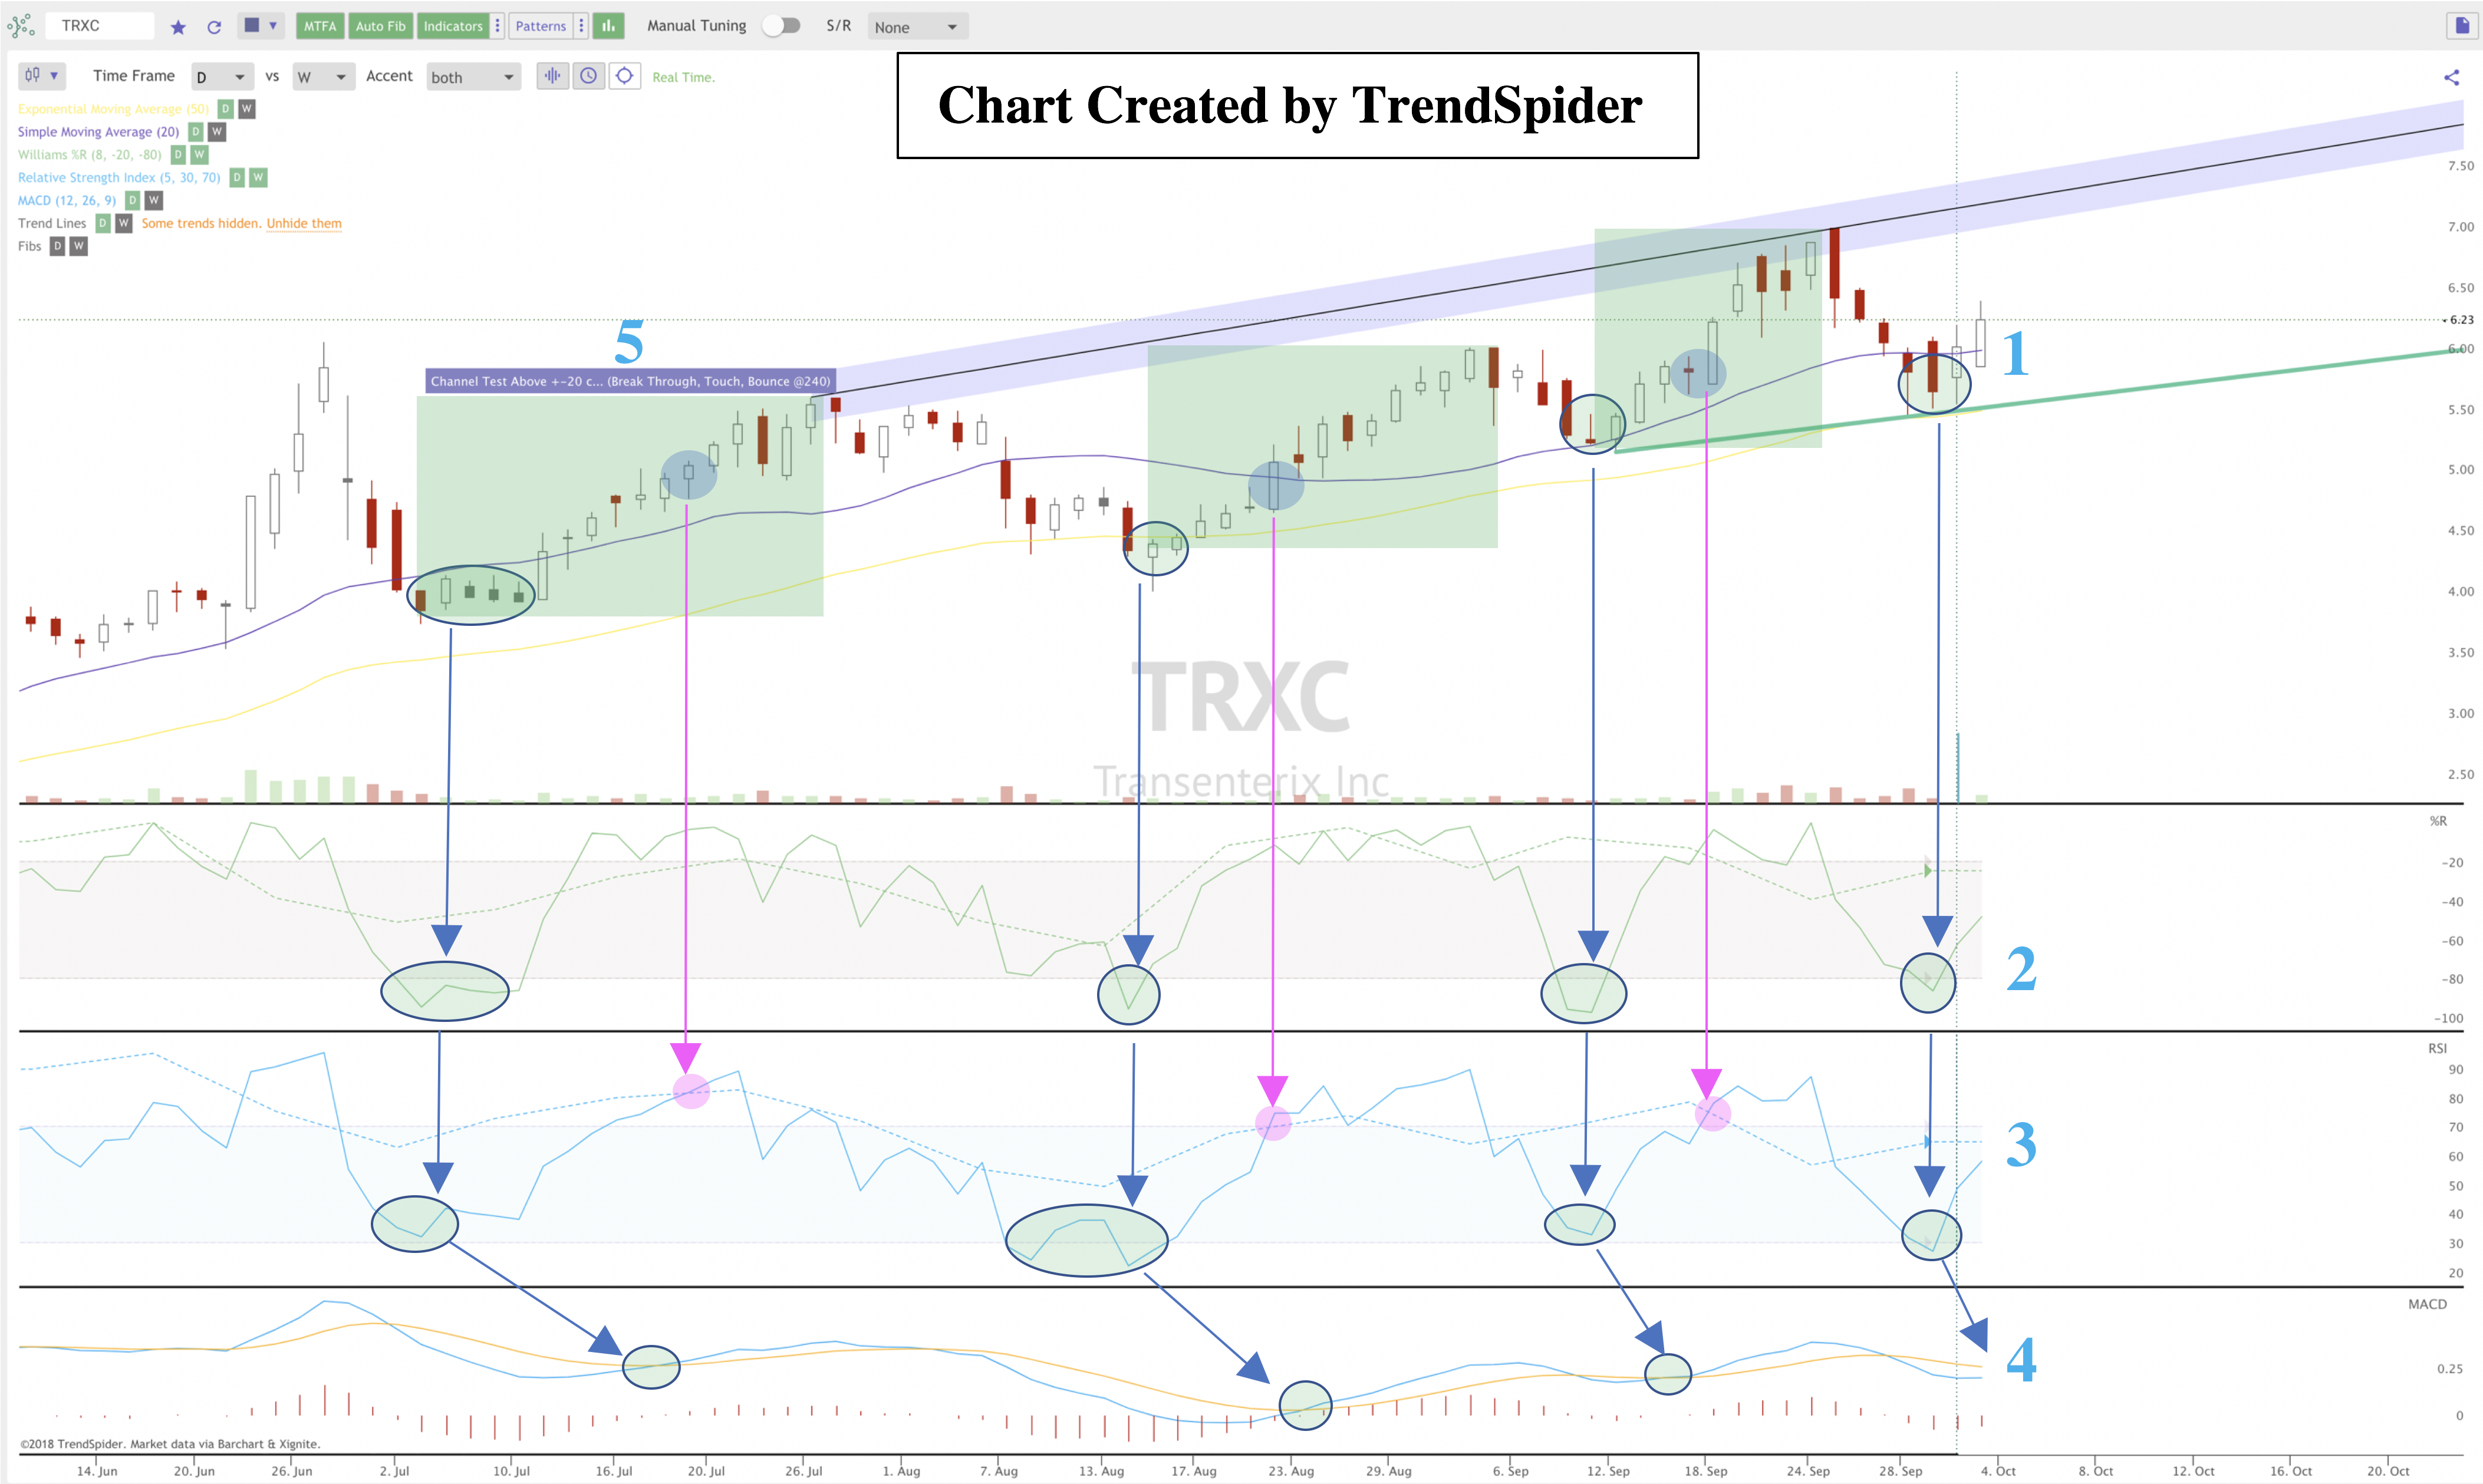 TRXC: Back On The Move - TrendSpider | Seeking Alpha